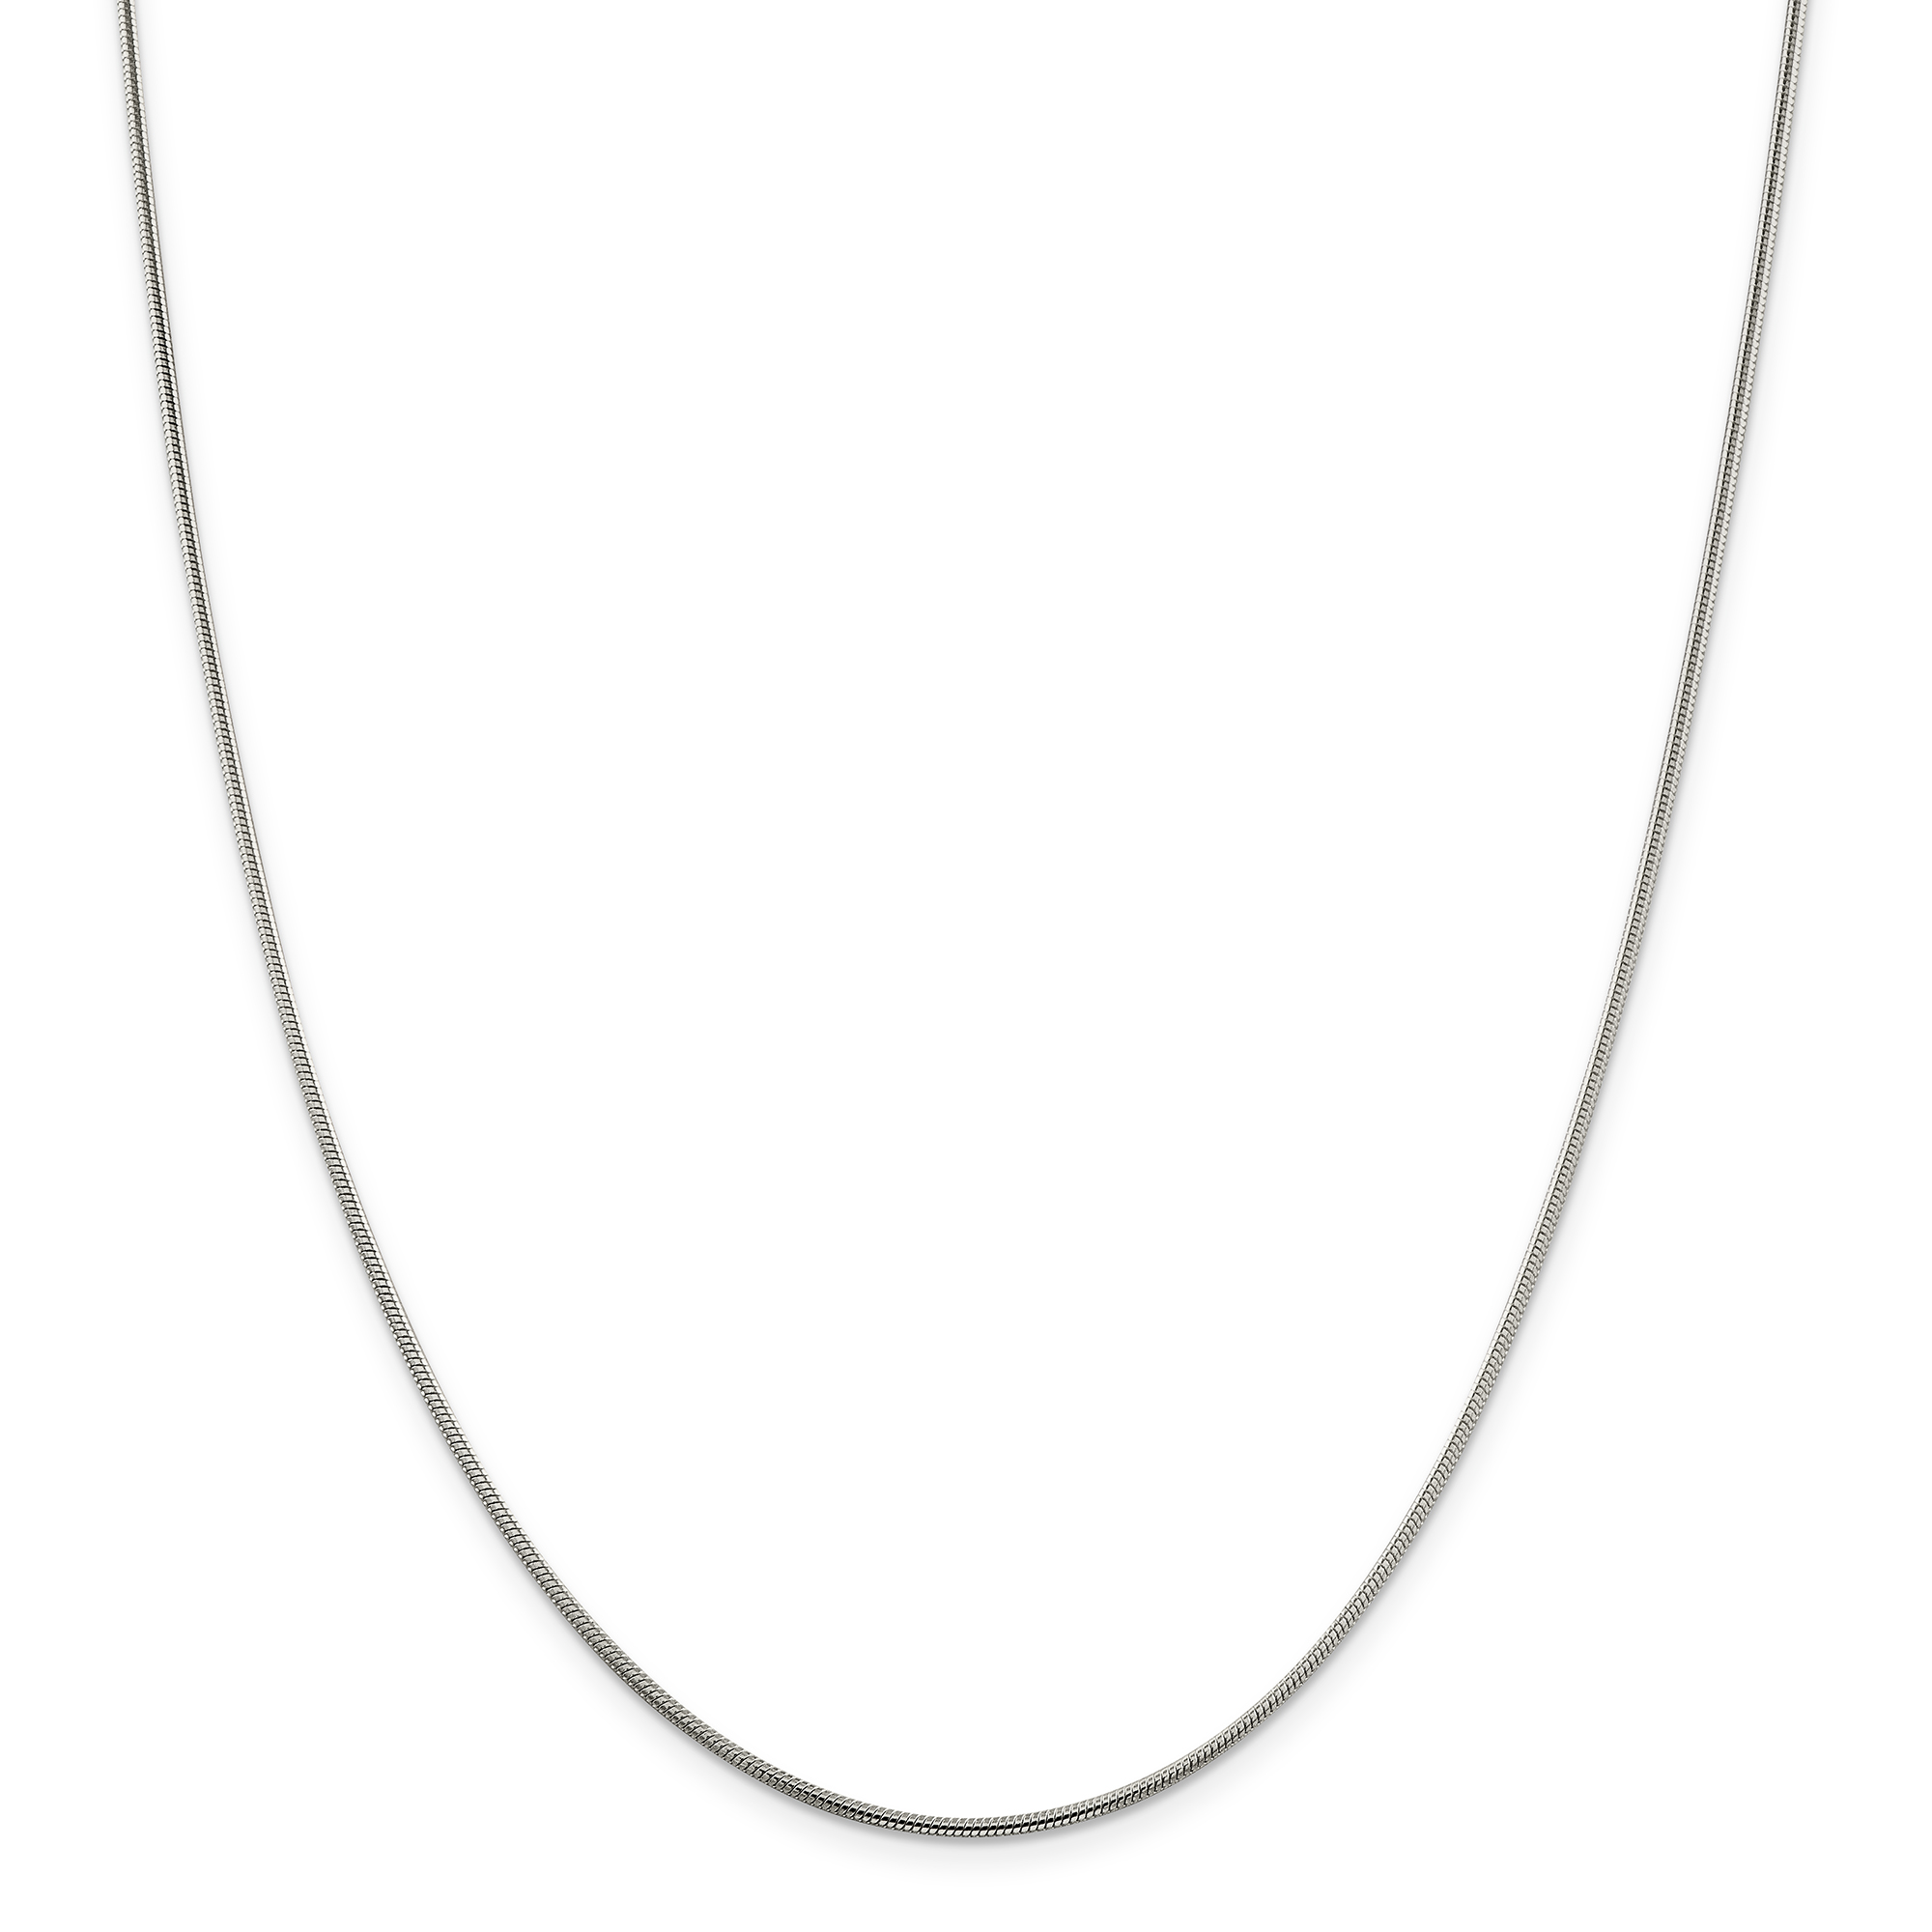 925 Sterling Silver 1.5mm Round Snake Chain 24 Inch - image 5 of 5